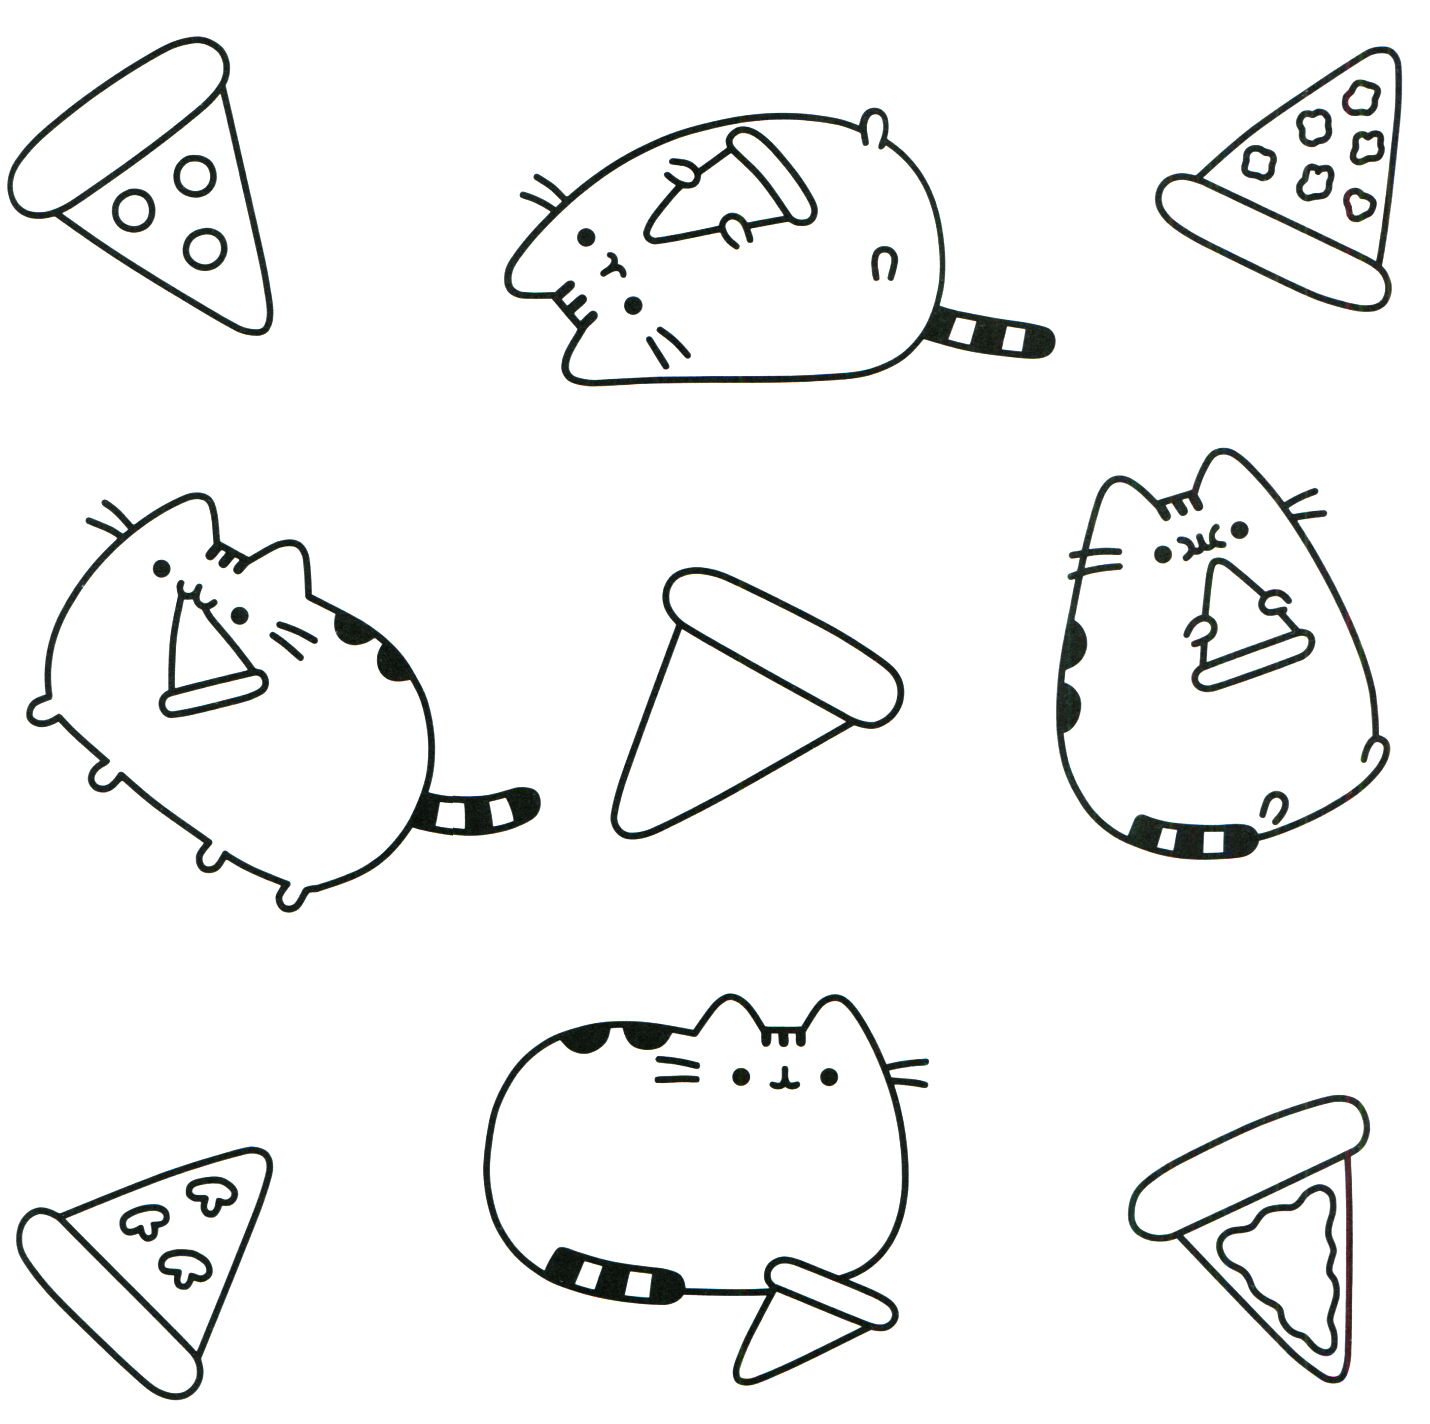 - Pusheen Coloring Pages Pusheen Coloring Pages, Cat Coloring Page